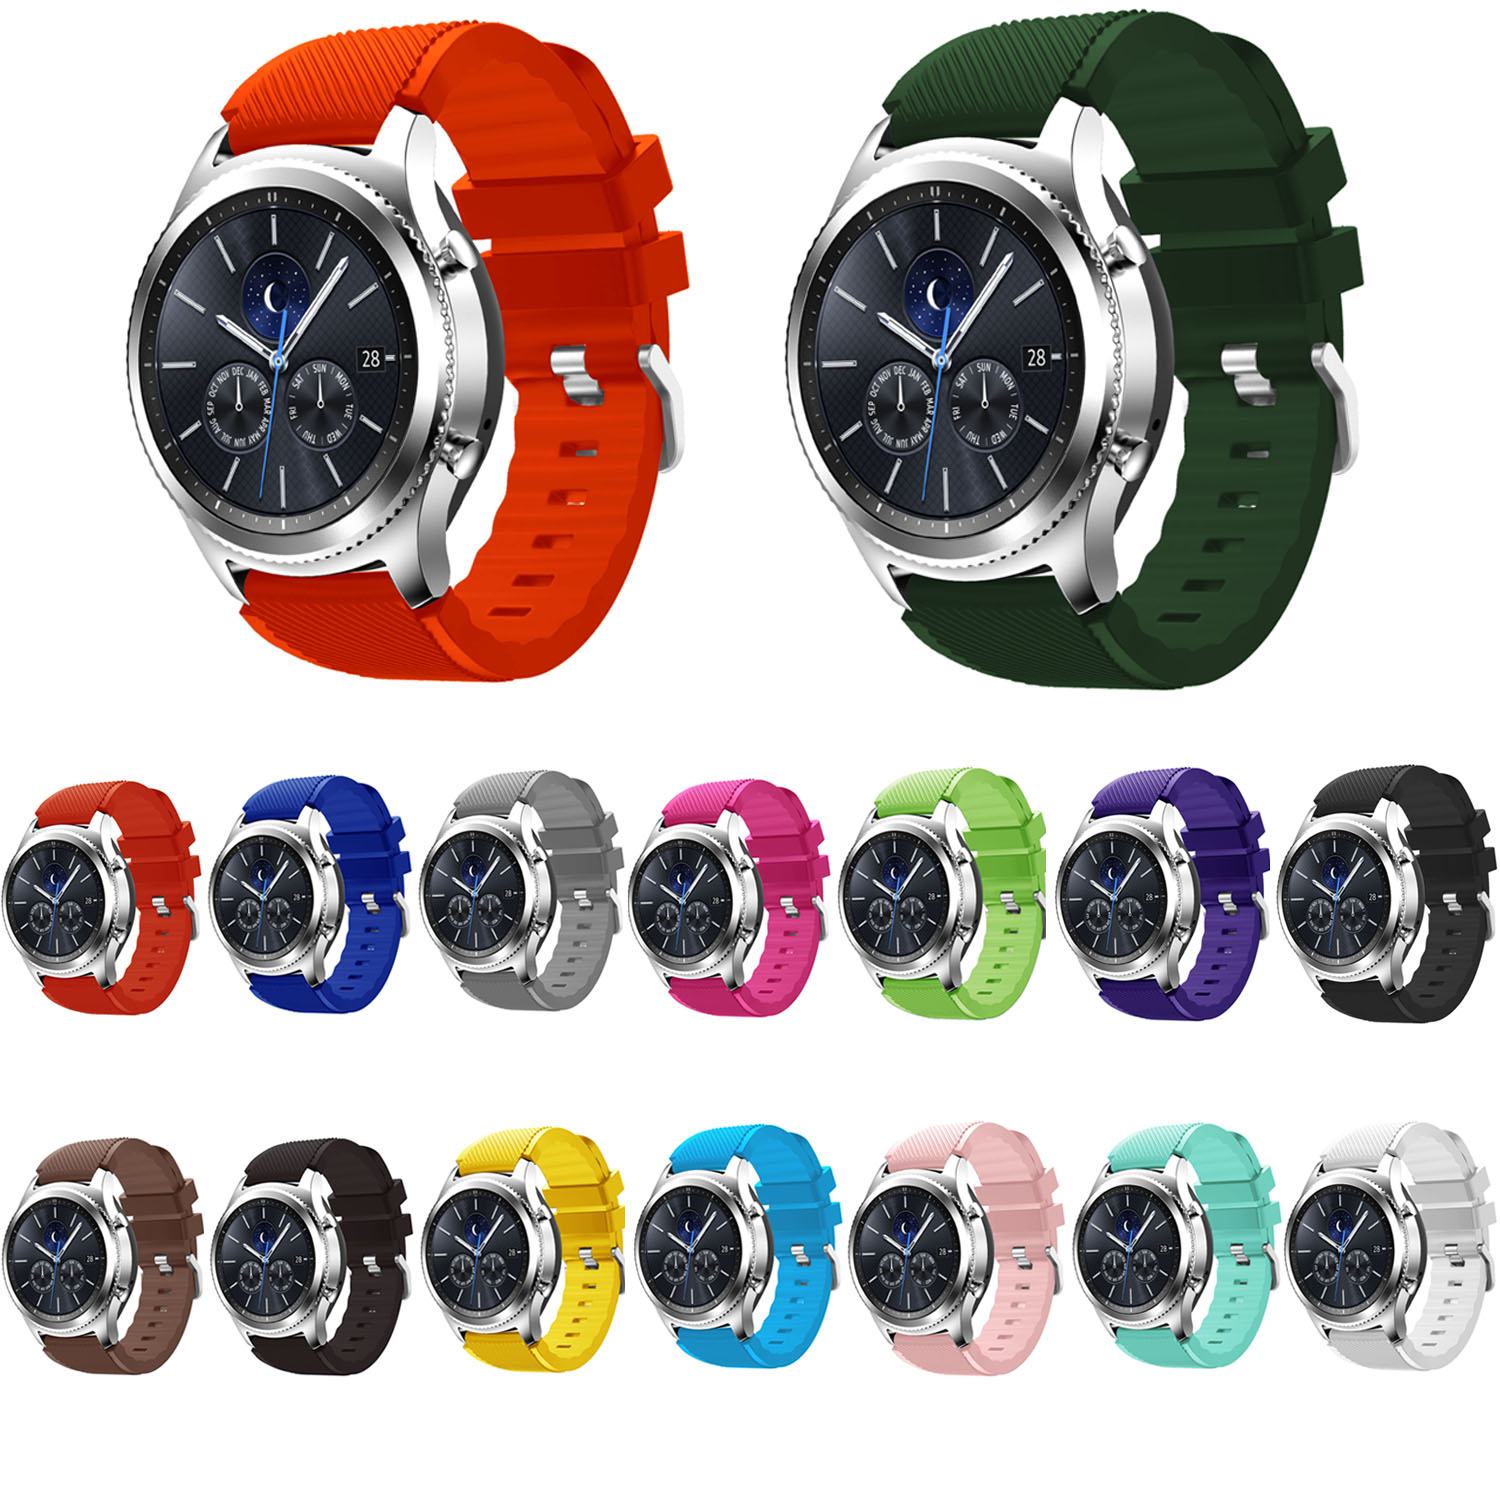 Galleria fotografica DAHASE Sweat Proof Strap for Samsung Gear S3 Frontier Silicone Watch Band for Gear S3 Classic Wristband with Quick Release Pins